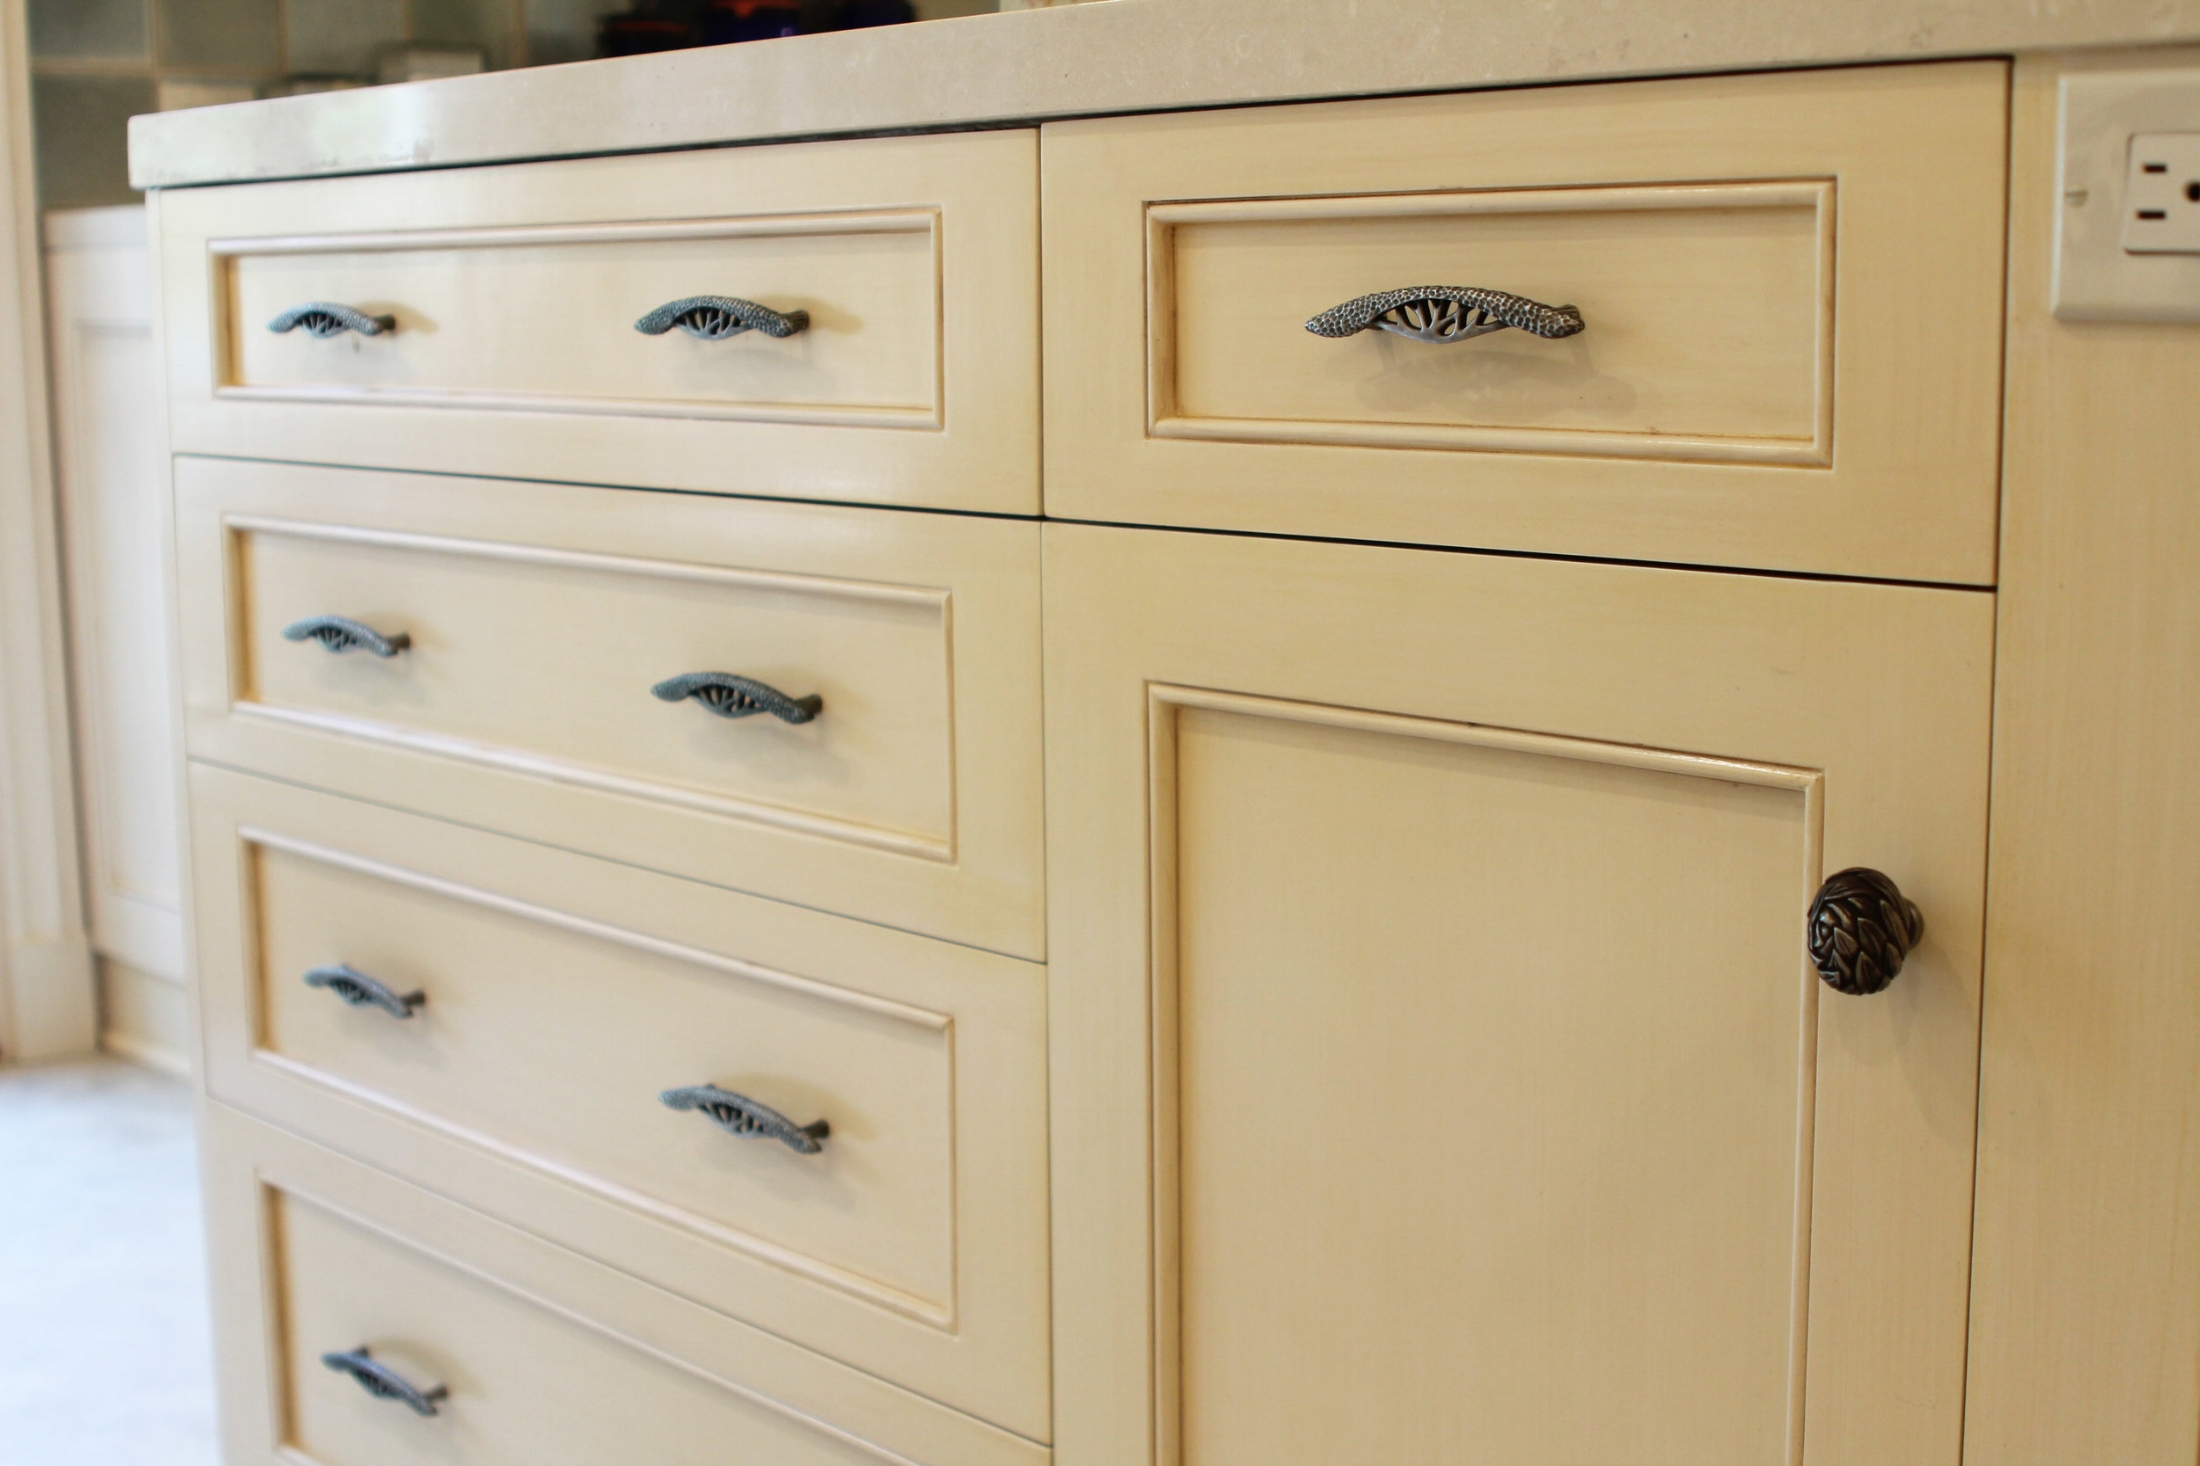 Hedgerow Plant Style Cabinet Pull